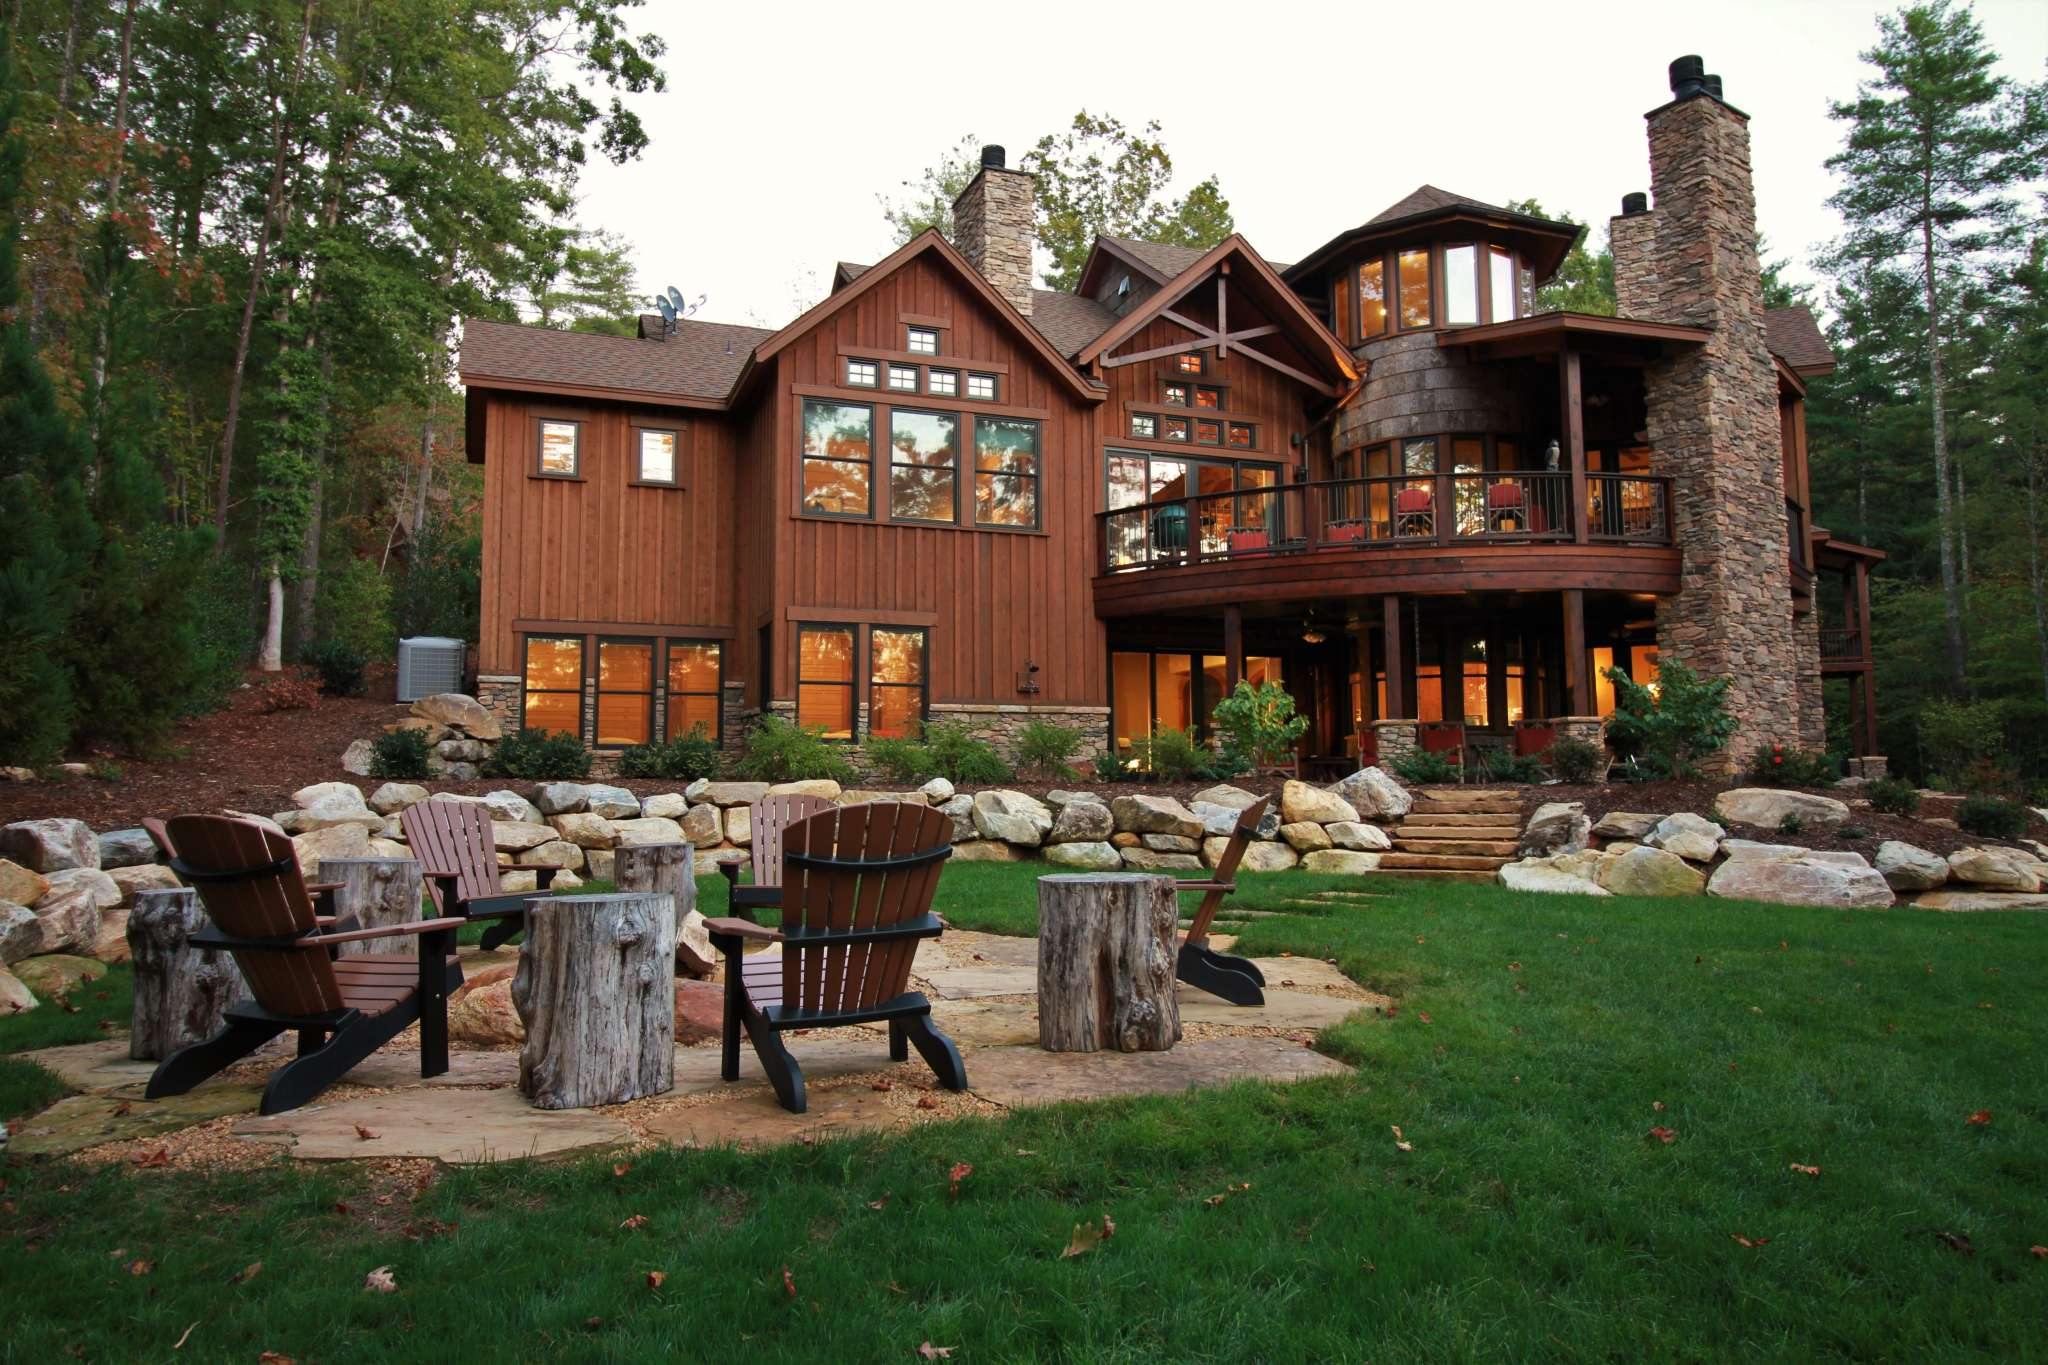 Lake James Custom Homes I Experienced Green Builders | Build your